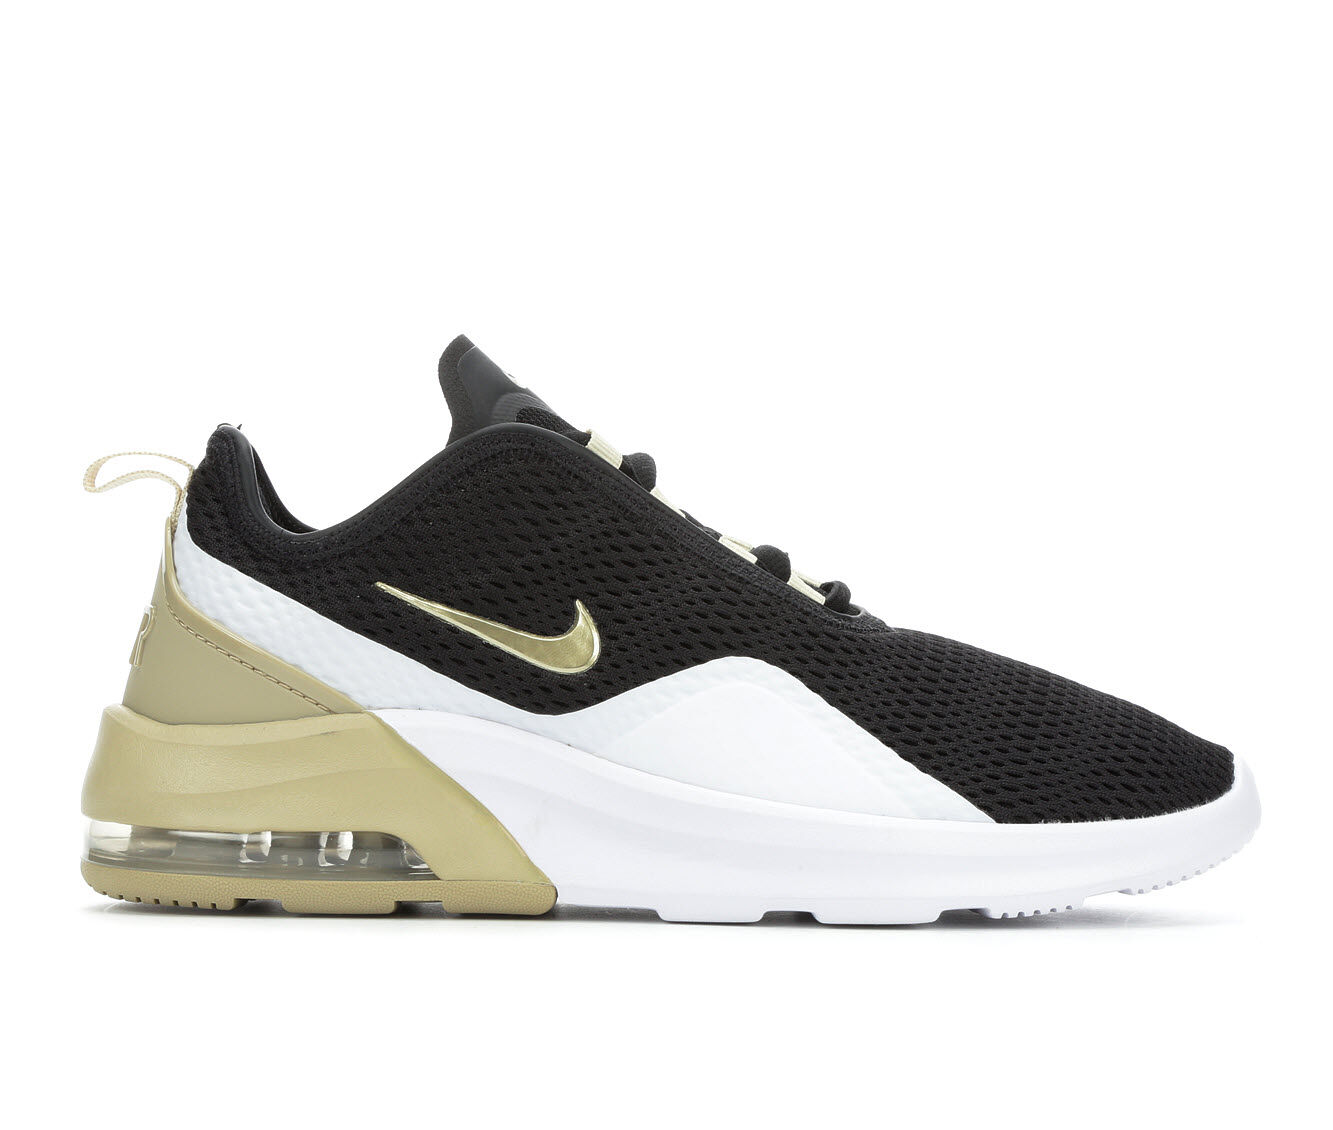 Women's Nike Air Max Motion 2 Sneakers Black/Gold/Wht